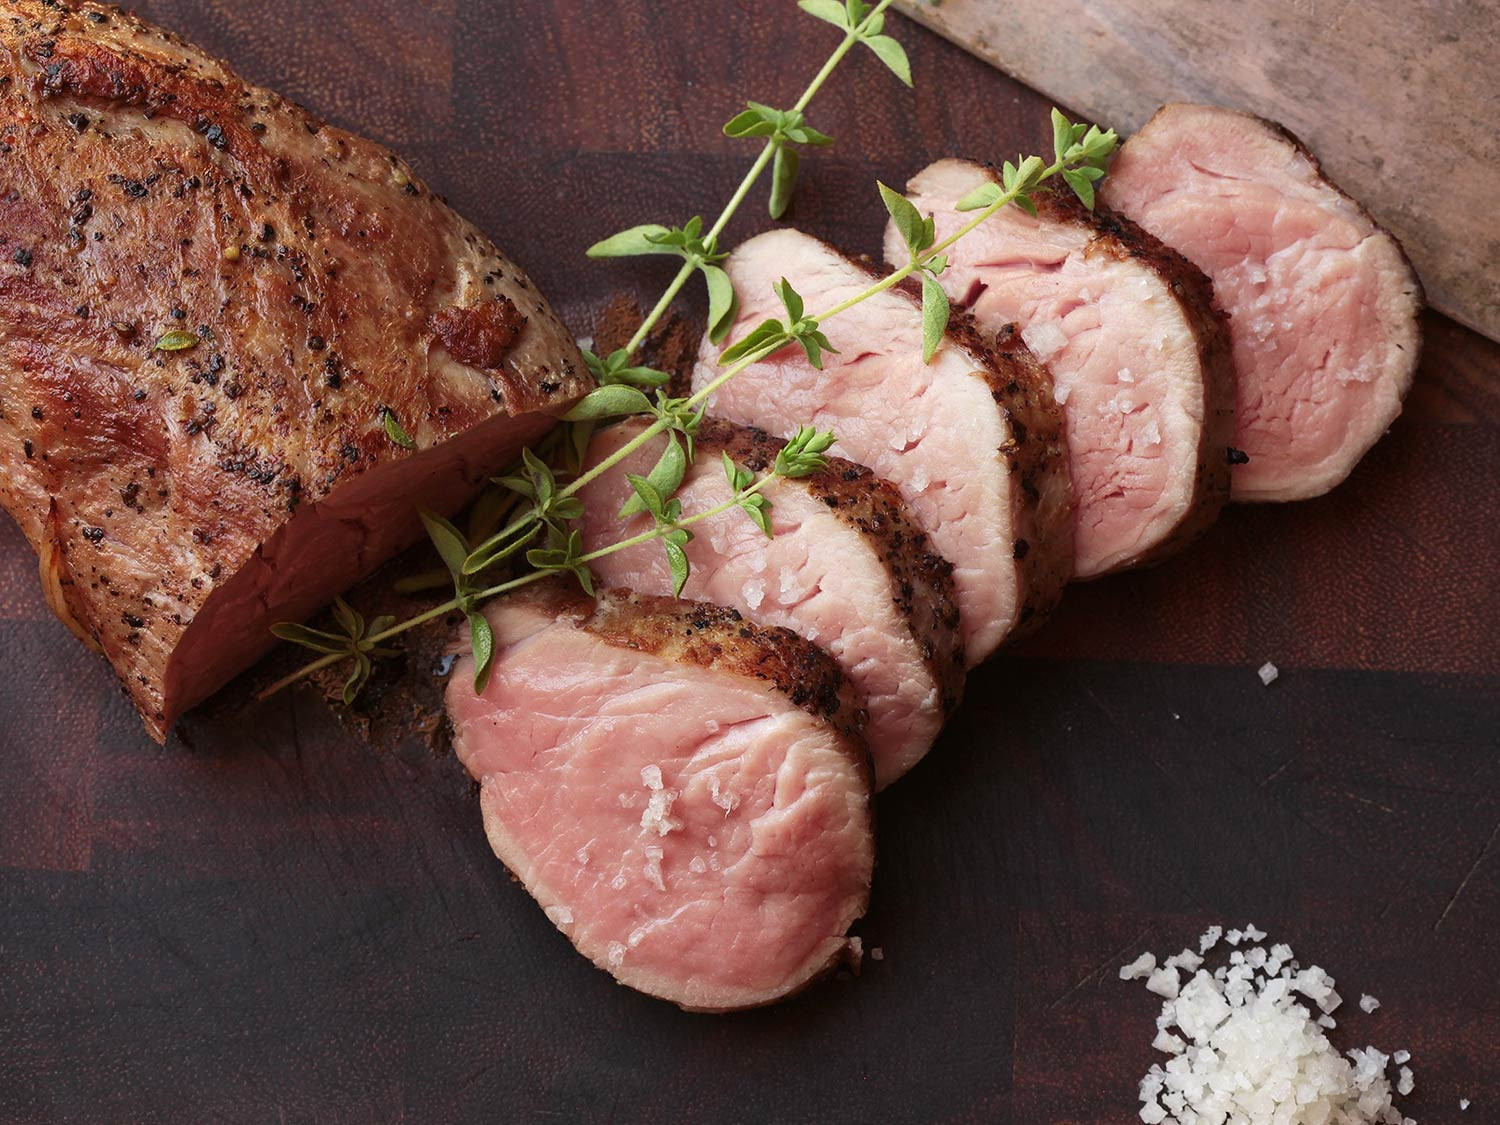 Pork Tenderloin Cook Temp  Sous Vide Pork Tenderloin Recipe